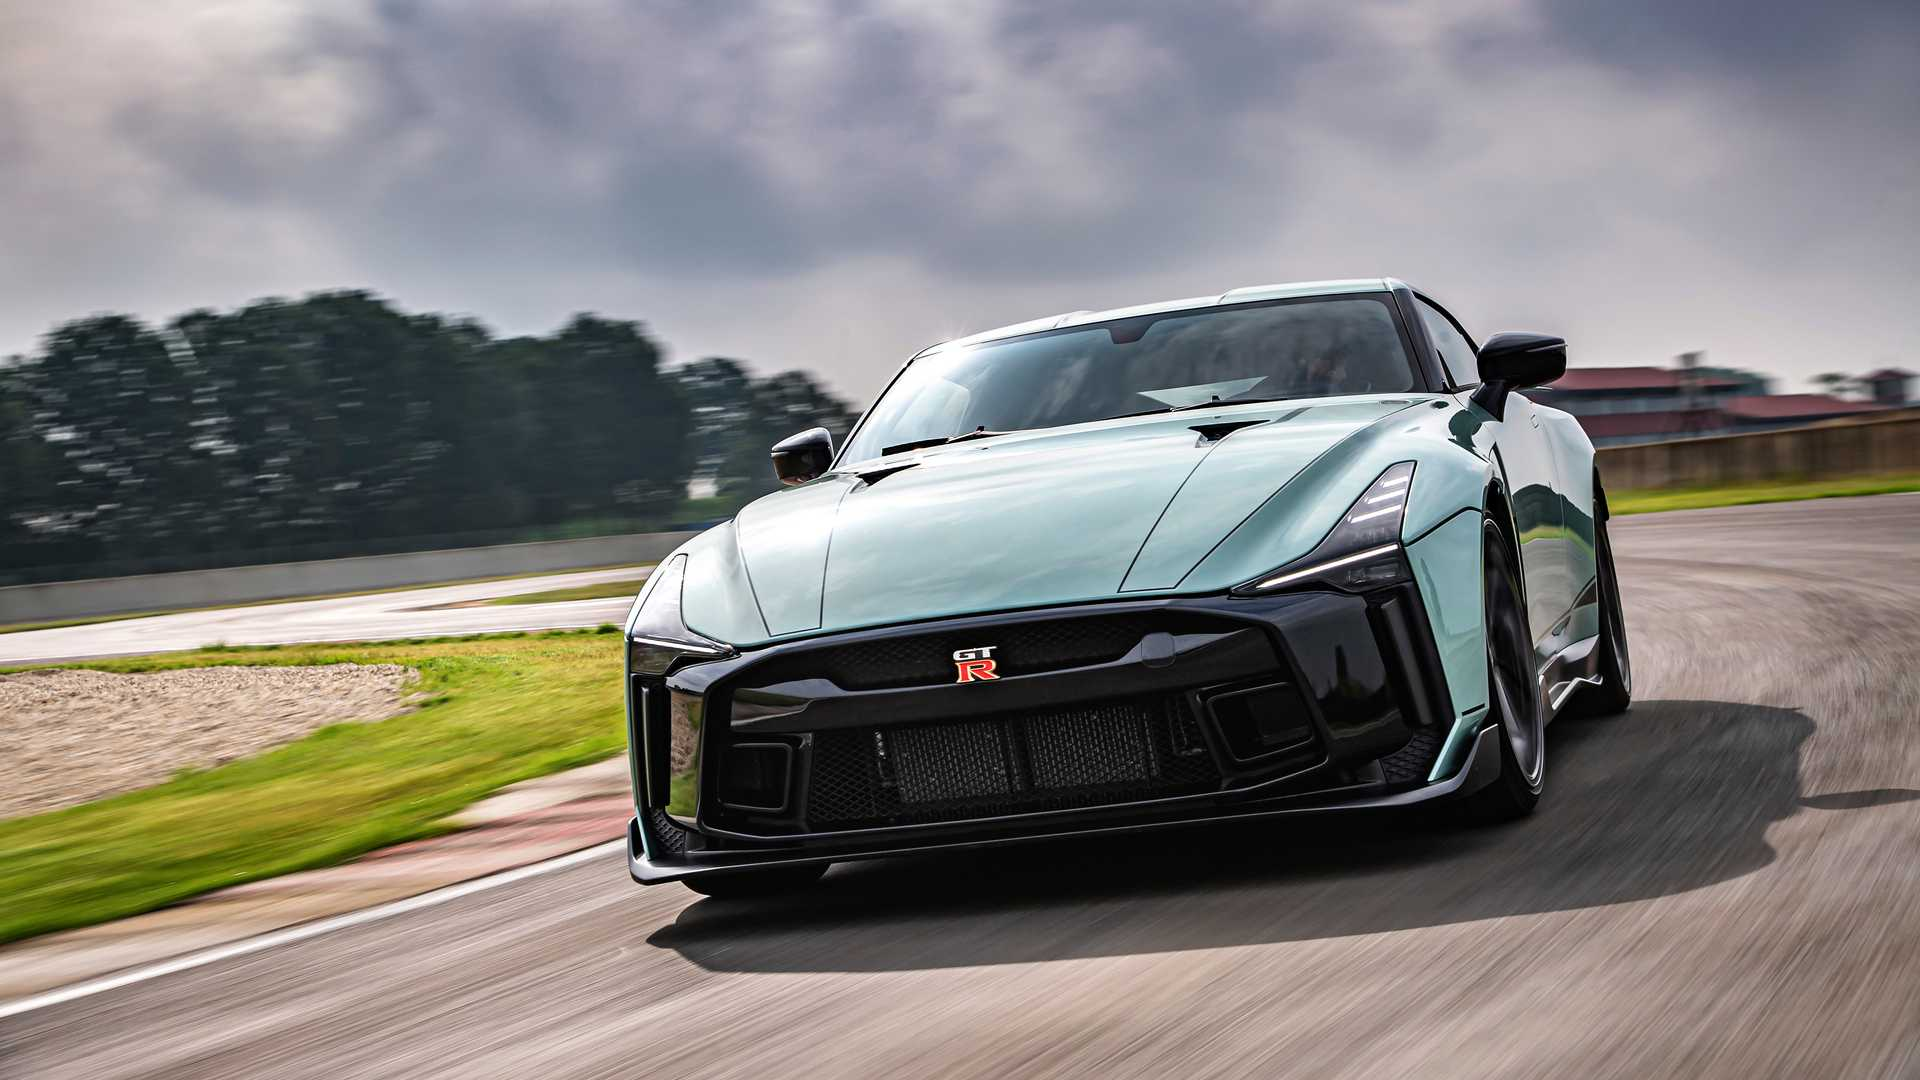 Nissan GT-R R4 Final Edition Coming 4 With 4 Horsepower: Report